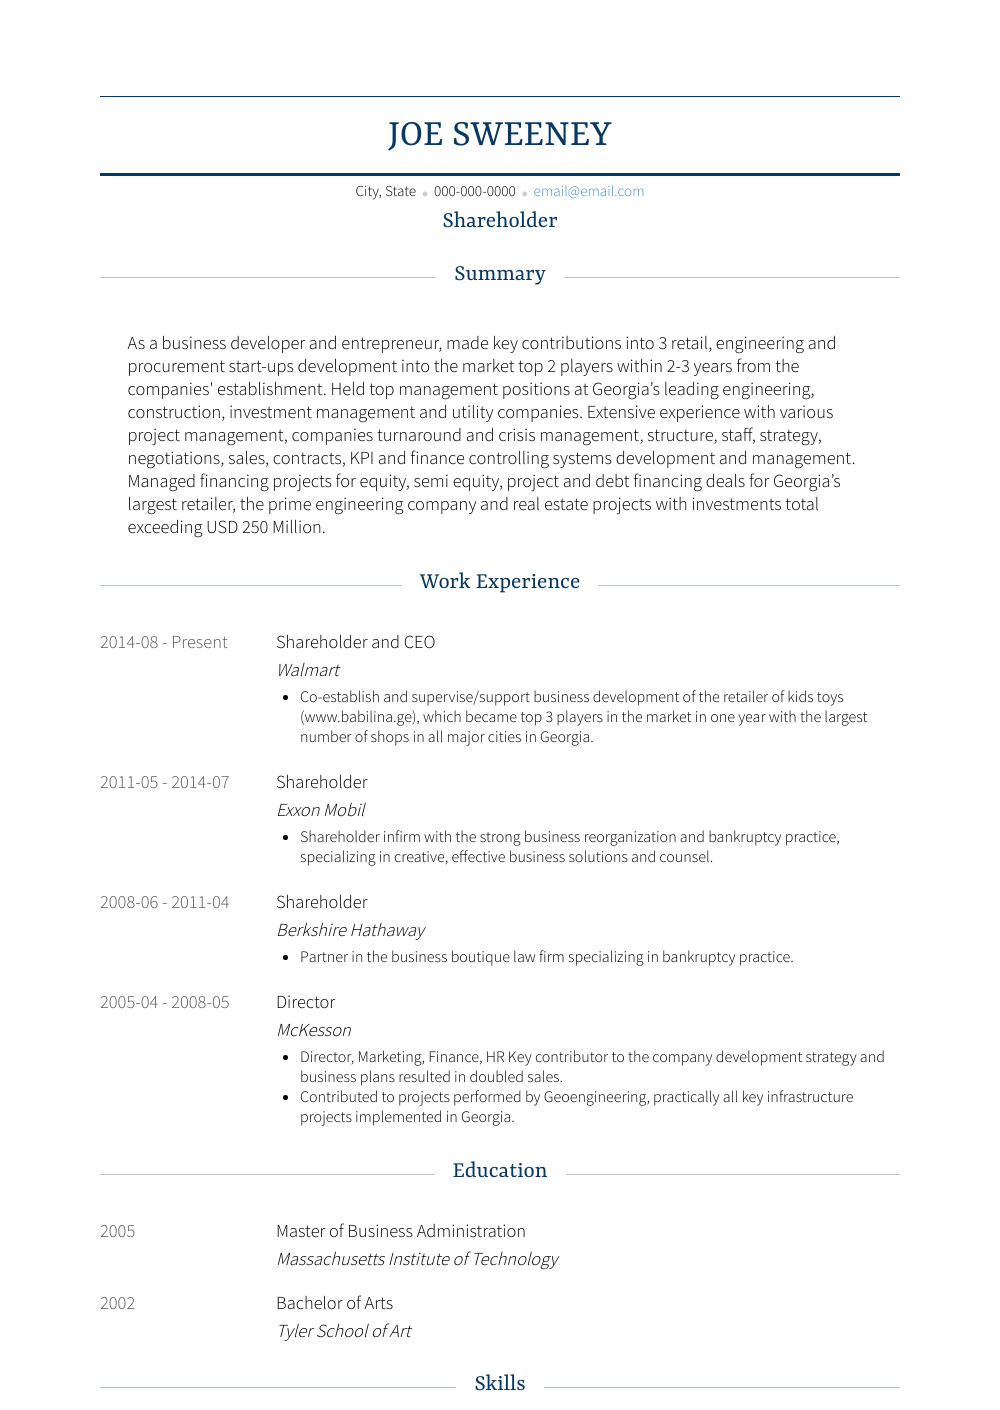 Shareholder Resume Sample